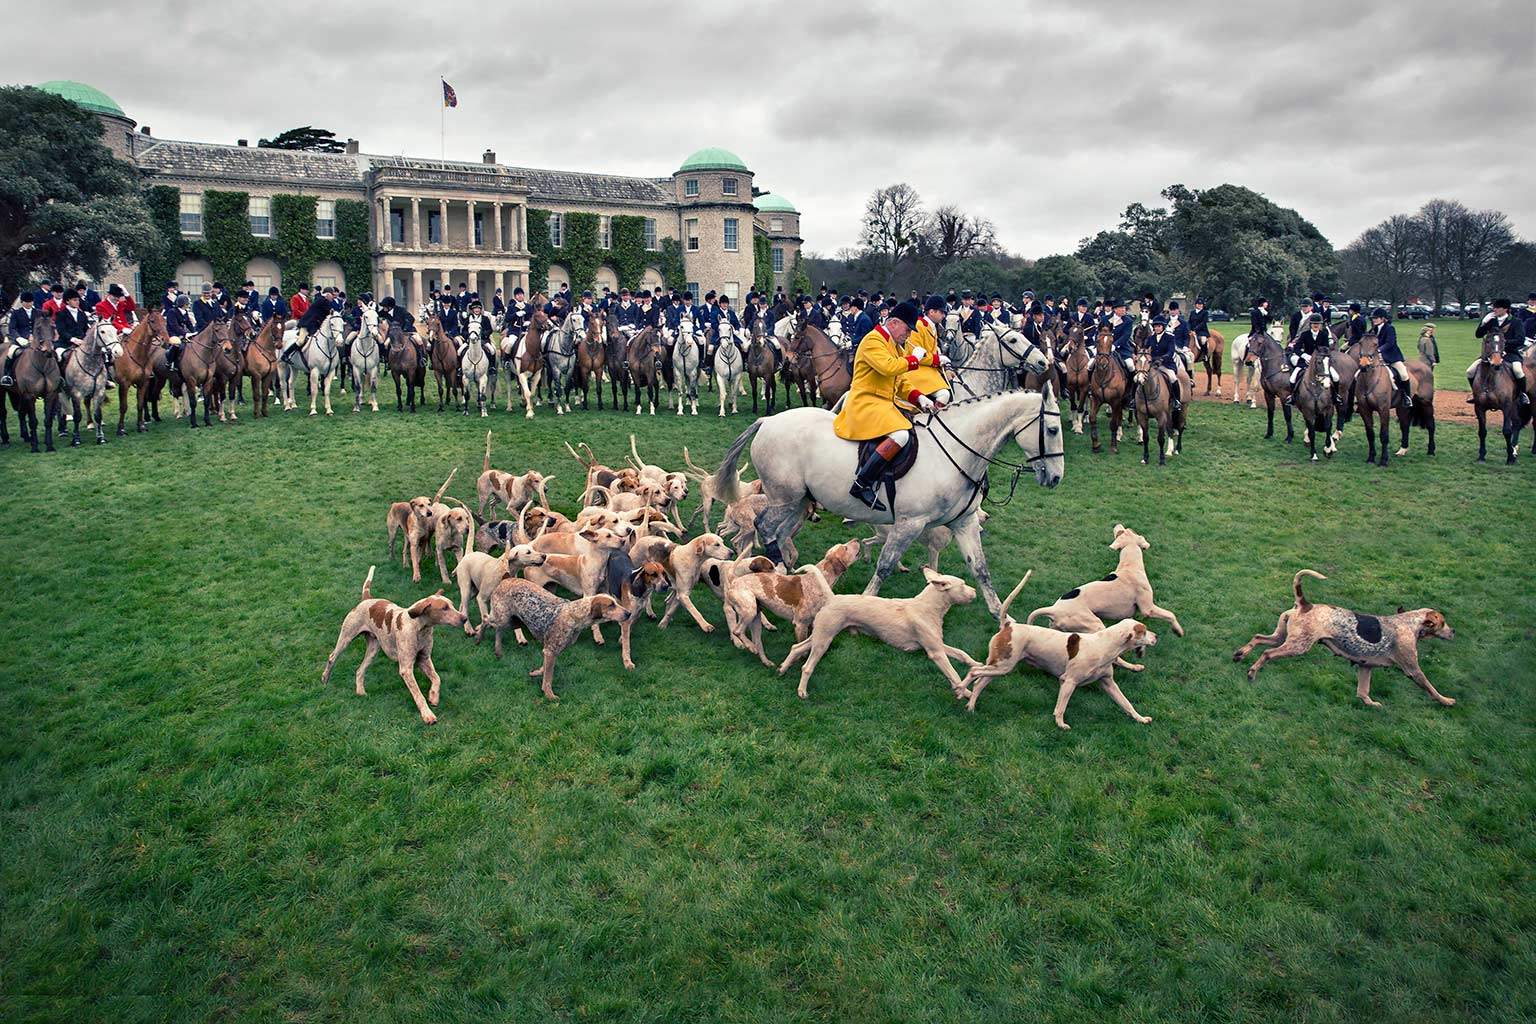 Huntsman leading away the hounds from Goodwood House